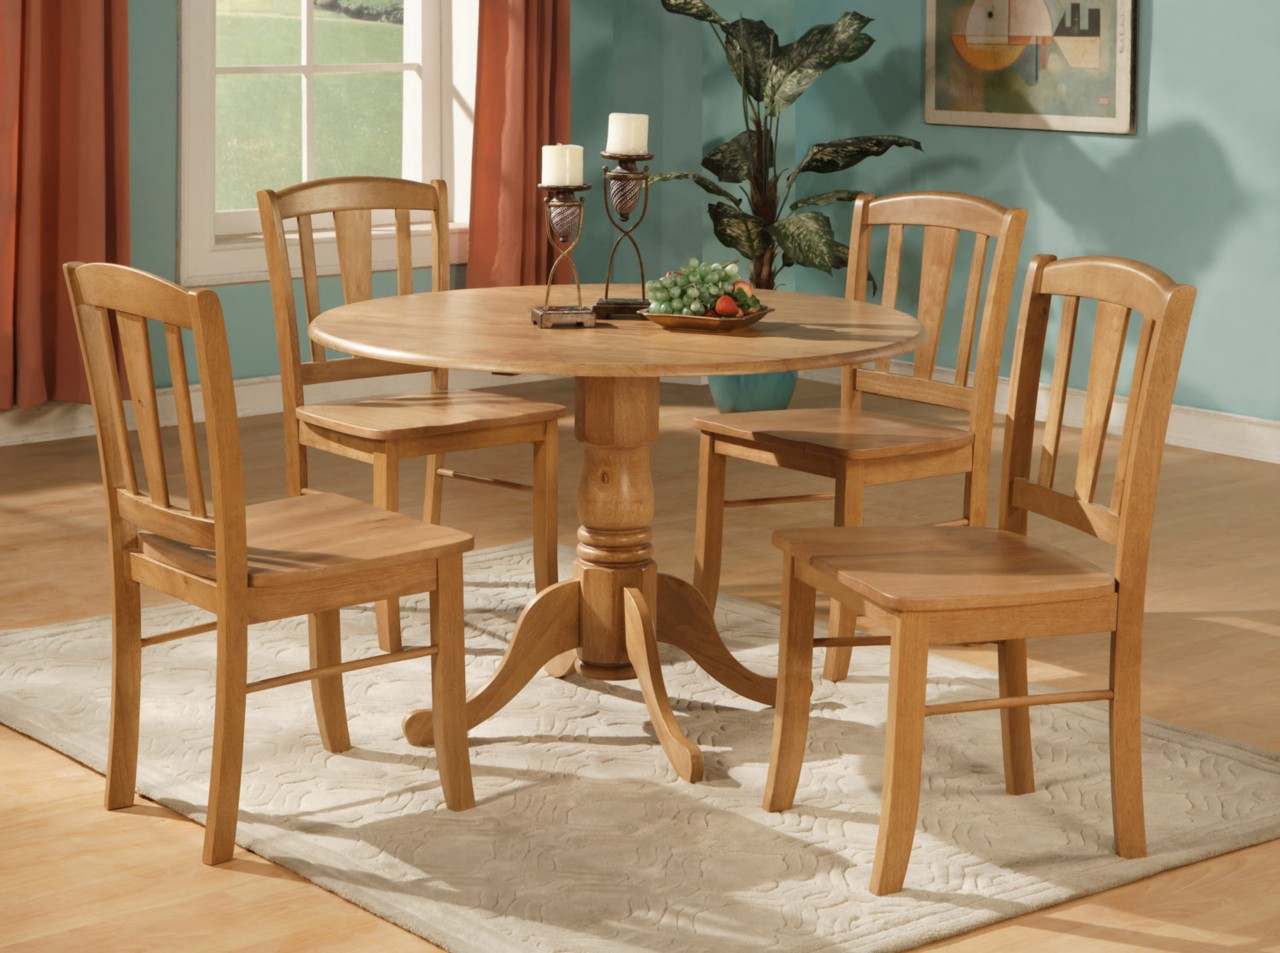 Table And Chairs Set 5pc Round Dinette Kitchen Dining Set Table And 4 Chairs Ebay